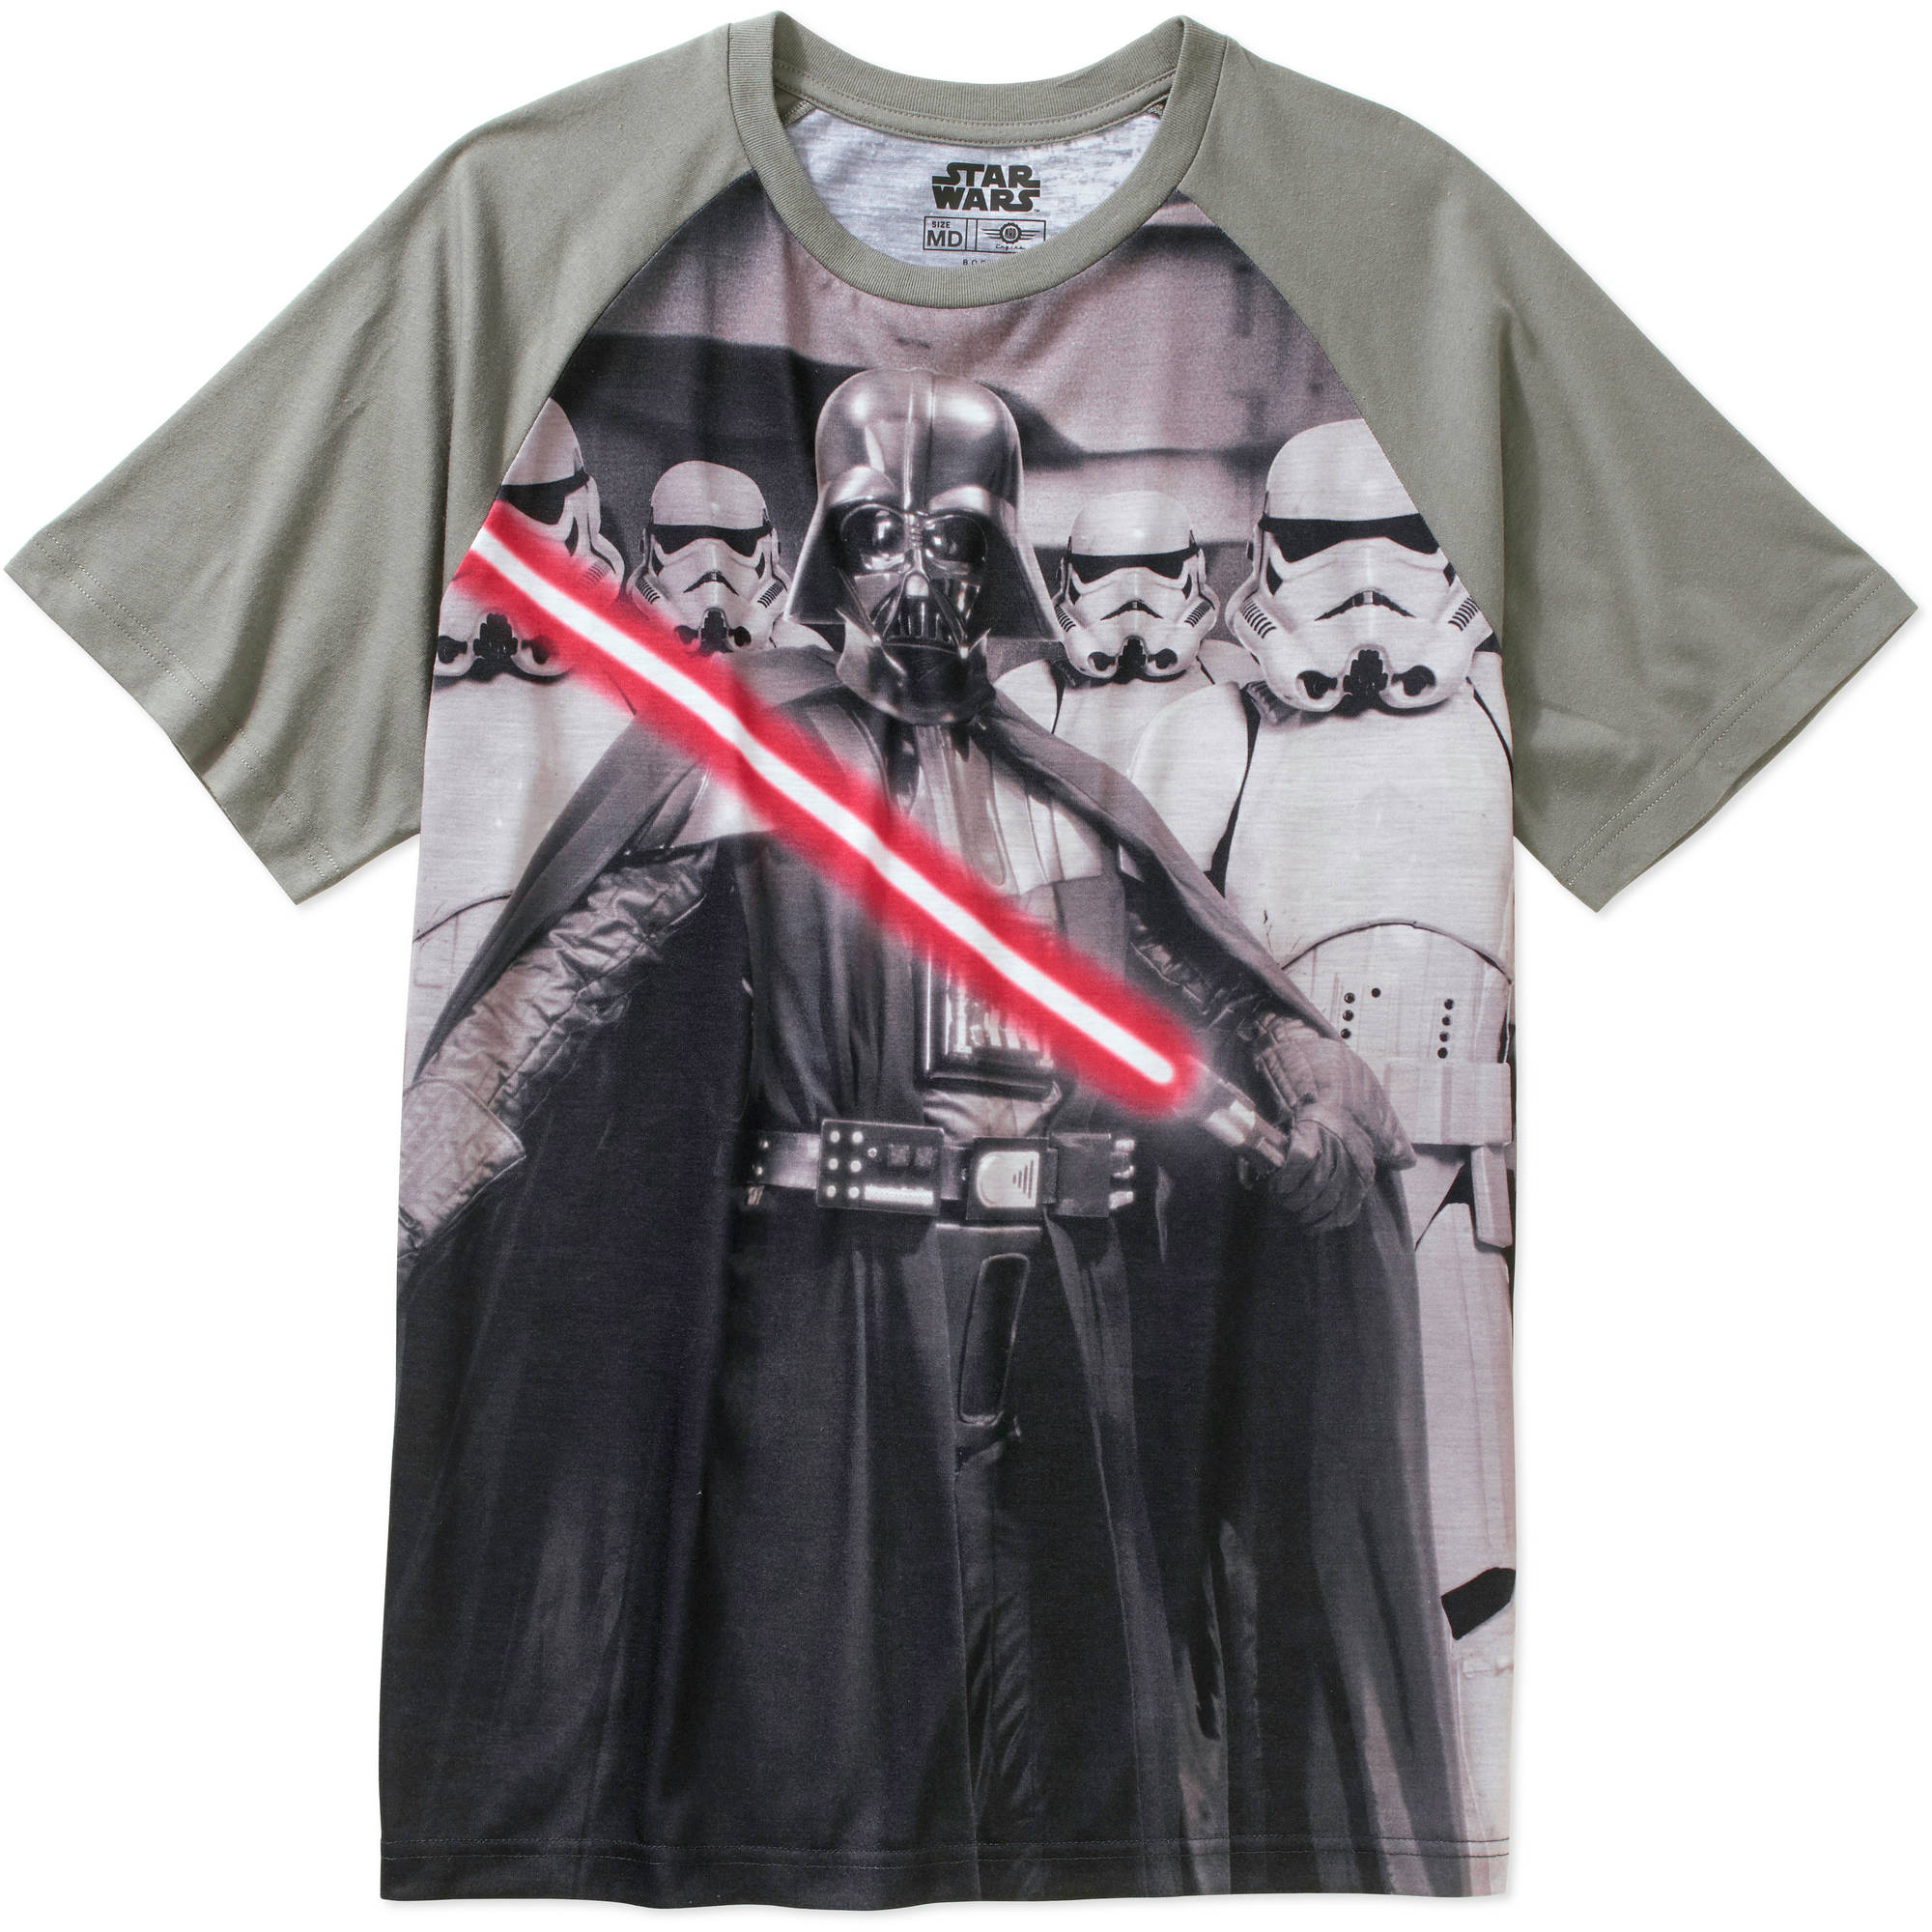 Star Wars Vader's Squad Men's Graphic Tee